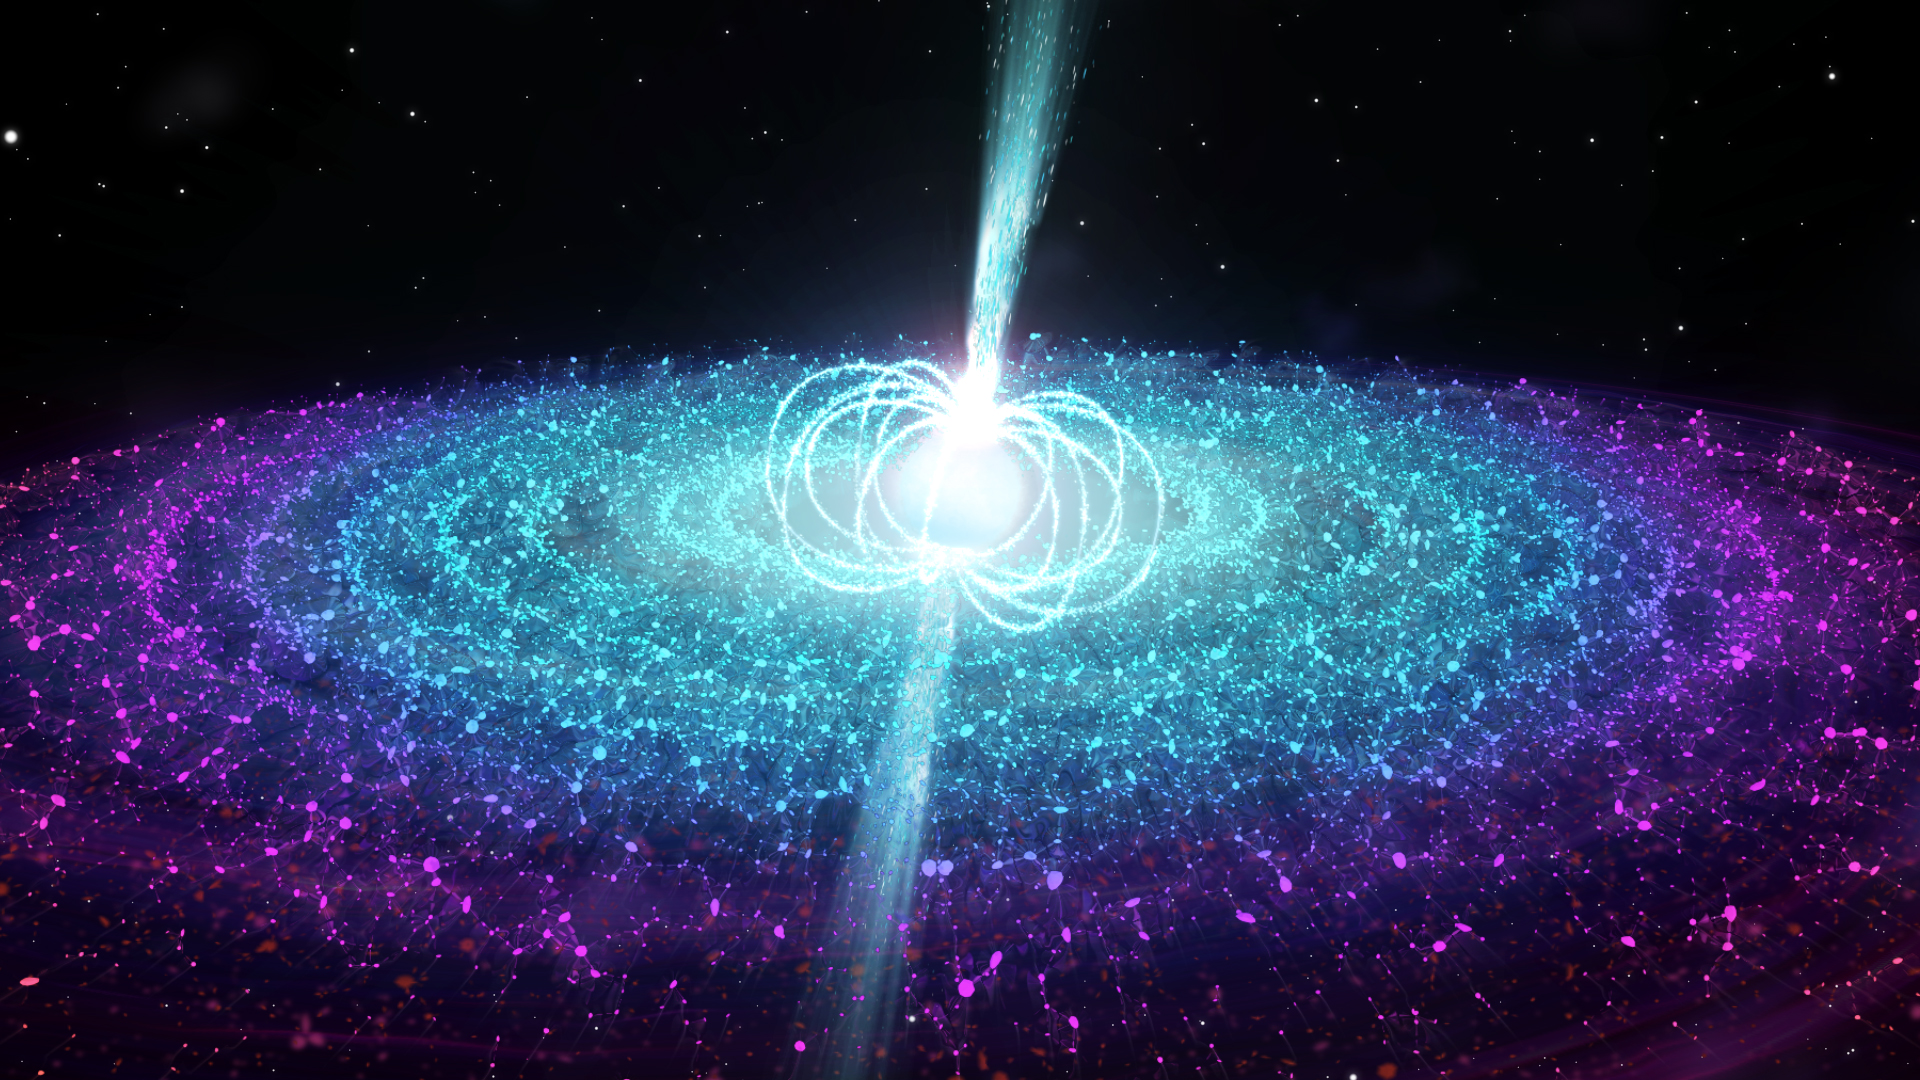 An artist's impression of the strong magnetic field neutron star in Swift J0243.6+6124 launching a jet. During the bright outburst event in which it was first discovered, the neutron star in Swift J0243.6+6124 was accreting at a very high rate, producing copious X-ray emission from the inner parts of the accretion disk. At the same time, the team detected radio emission with a sensitive radio telescope, the Karl G. Jansky Very Large Array in the USA. By studying how this radio emission changed with the X-rays, we could deduce that it came from fast-moving, narrowly-focused beams of material known as jets, seen here moving away from the neutron star magnetic poles. Credit: ICRAR/University of Amsterdam.